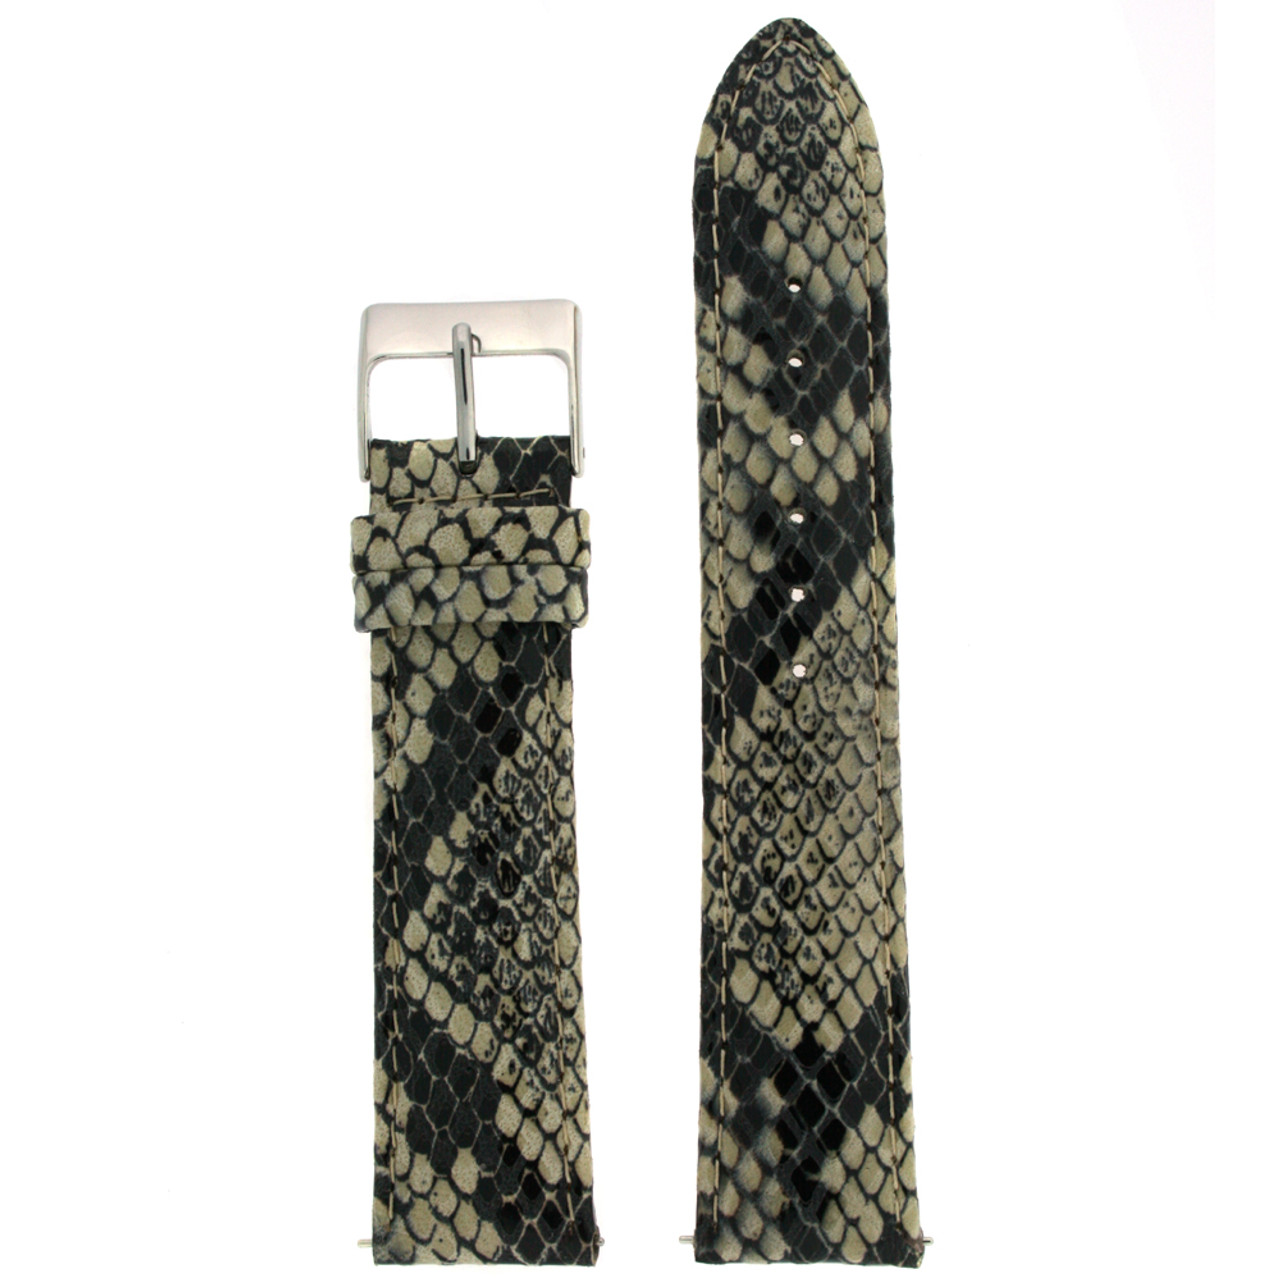 Watch Band in Cream Snake Print - Top View